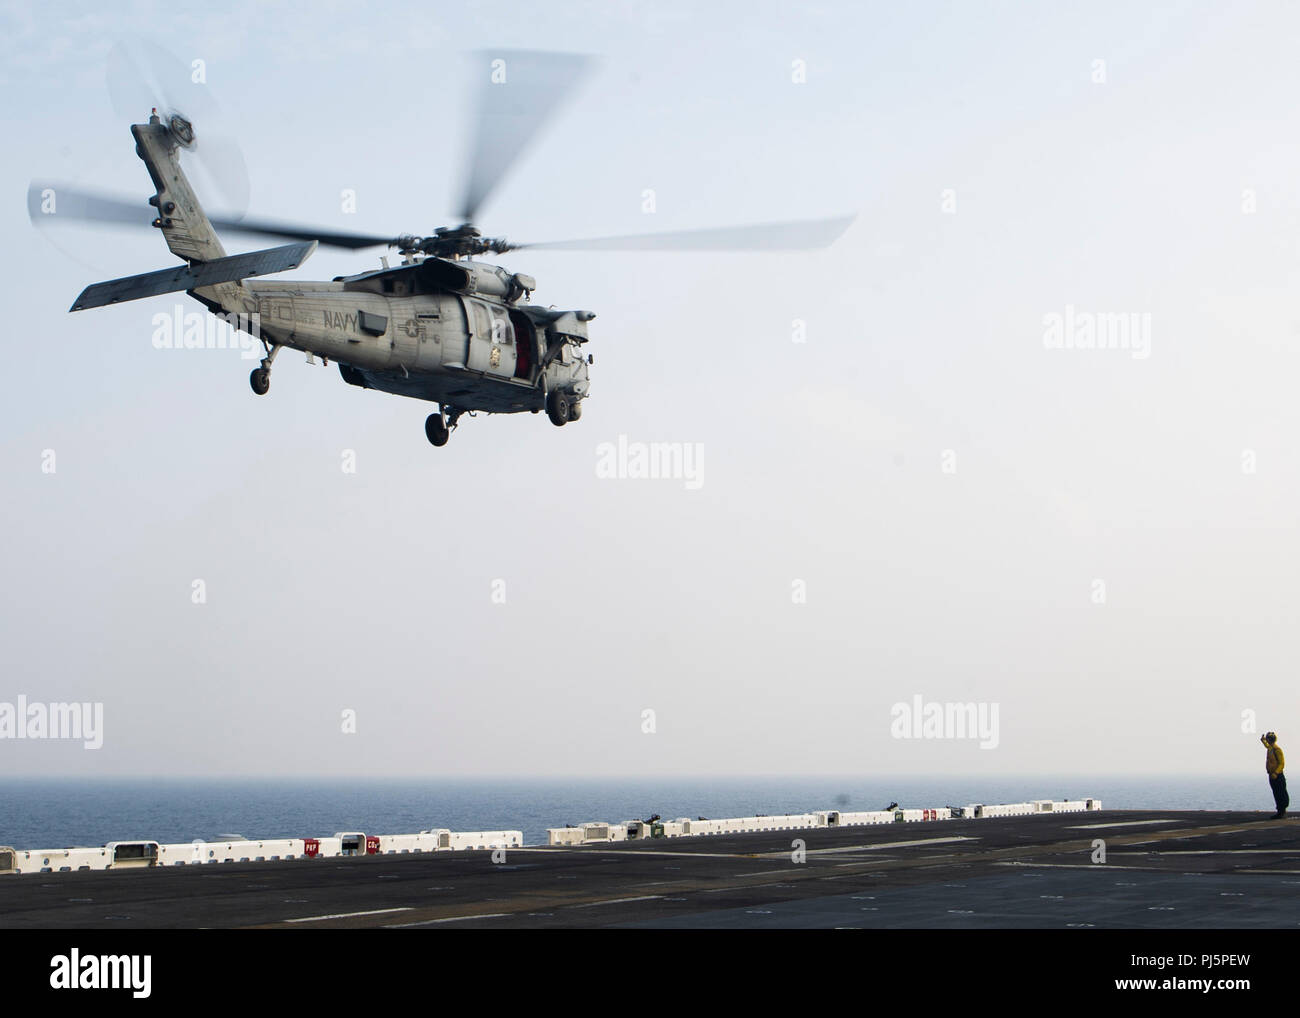 """180824-N-NB142-0477  SOUTH CHINA SEA (Aug. 24, 2018) – An MH-60S Sea Hawk helicopter, attached to the """"Blackjacks"""" of Helicopter Sea Combat Squadron (HSC) 21, launches from the flight deck of Wasp-class amphibious assault ship USS Essex (LHD 2) during a regularly scheduled deployment of the Essex Amphibious Ready Group (ARG) and 13th Marine Expeditionary Unit (MEU). The Essex ARG/13th MEU is a capable and lethal Navy-Marine Corps team deployed to the 7th fleet area of operations to support regional stability, reassure partners and allies and maintain a presence postured to respond to any crisi - Stock Image"""